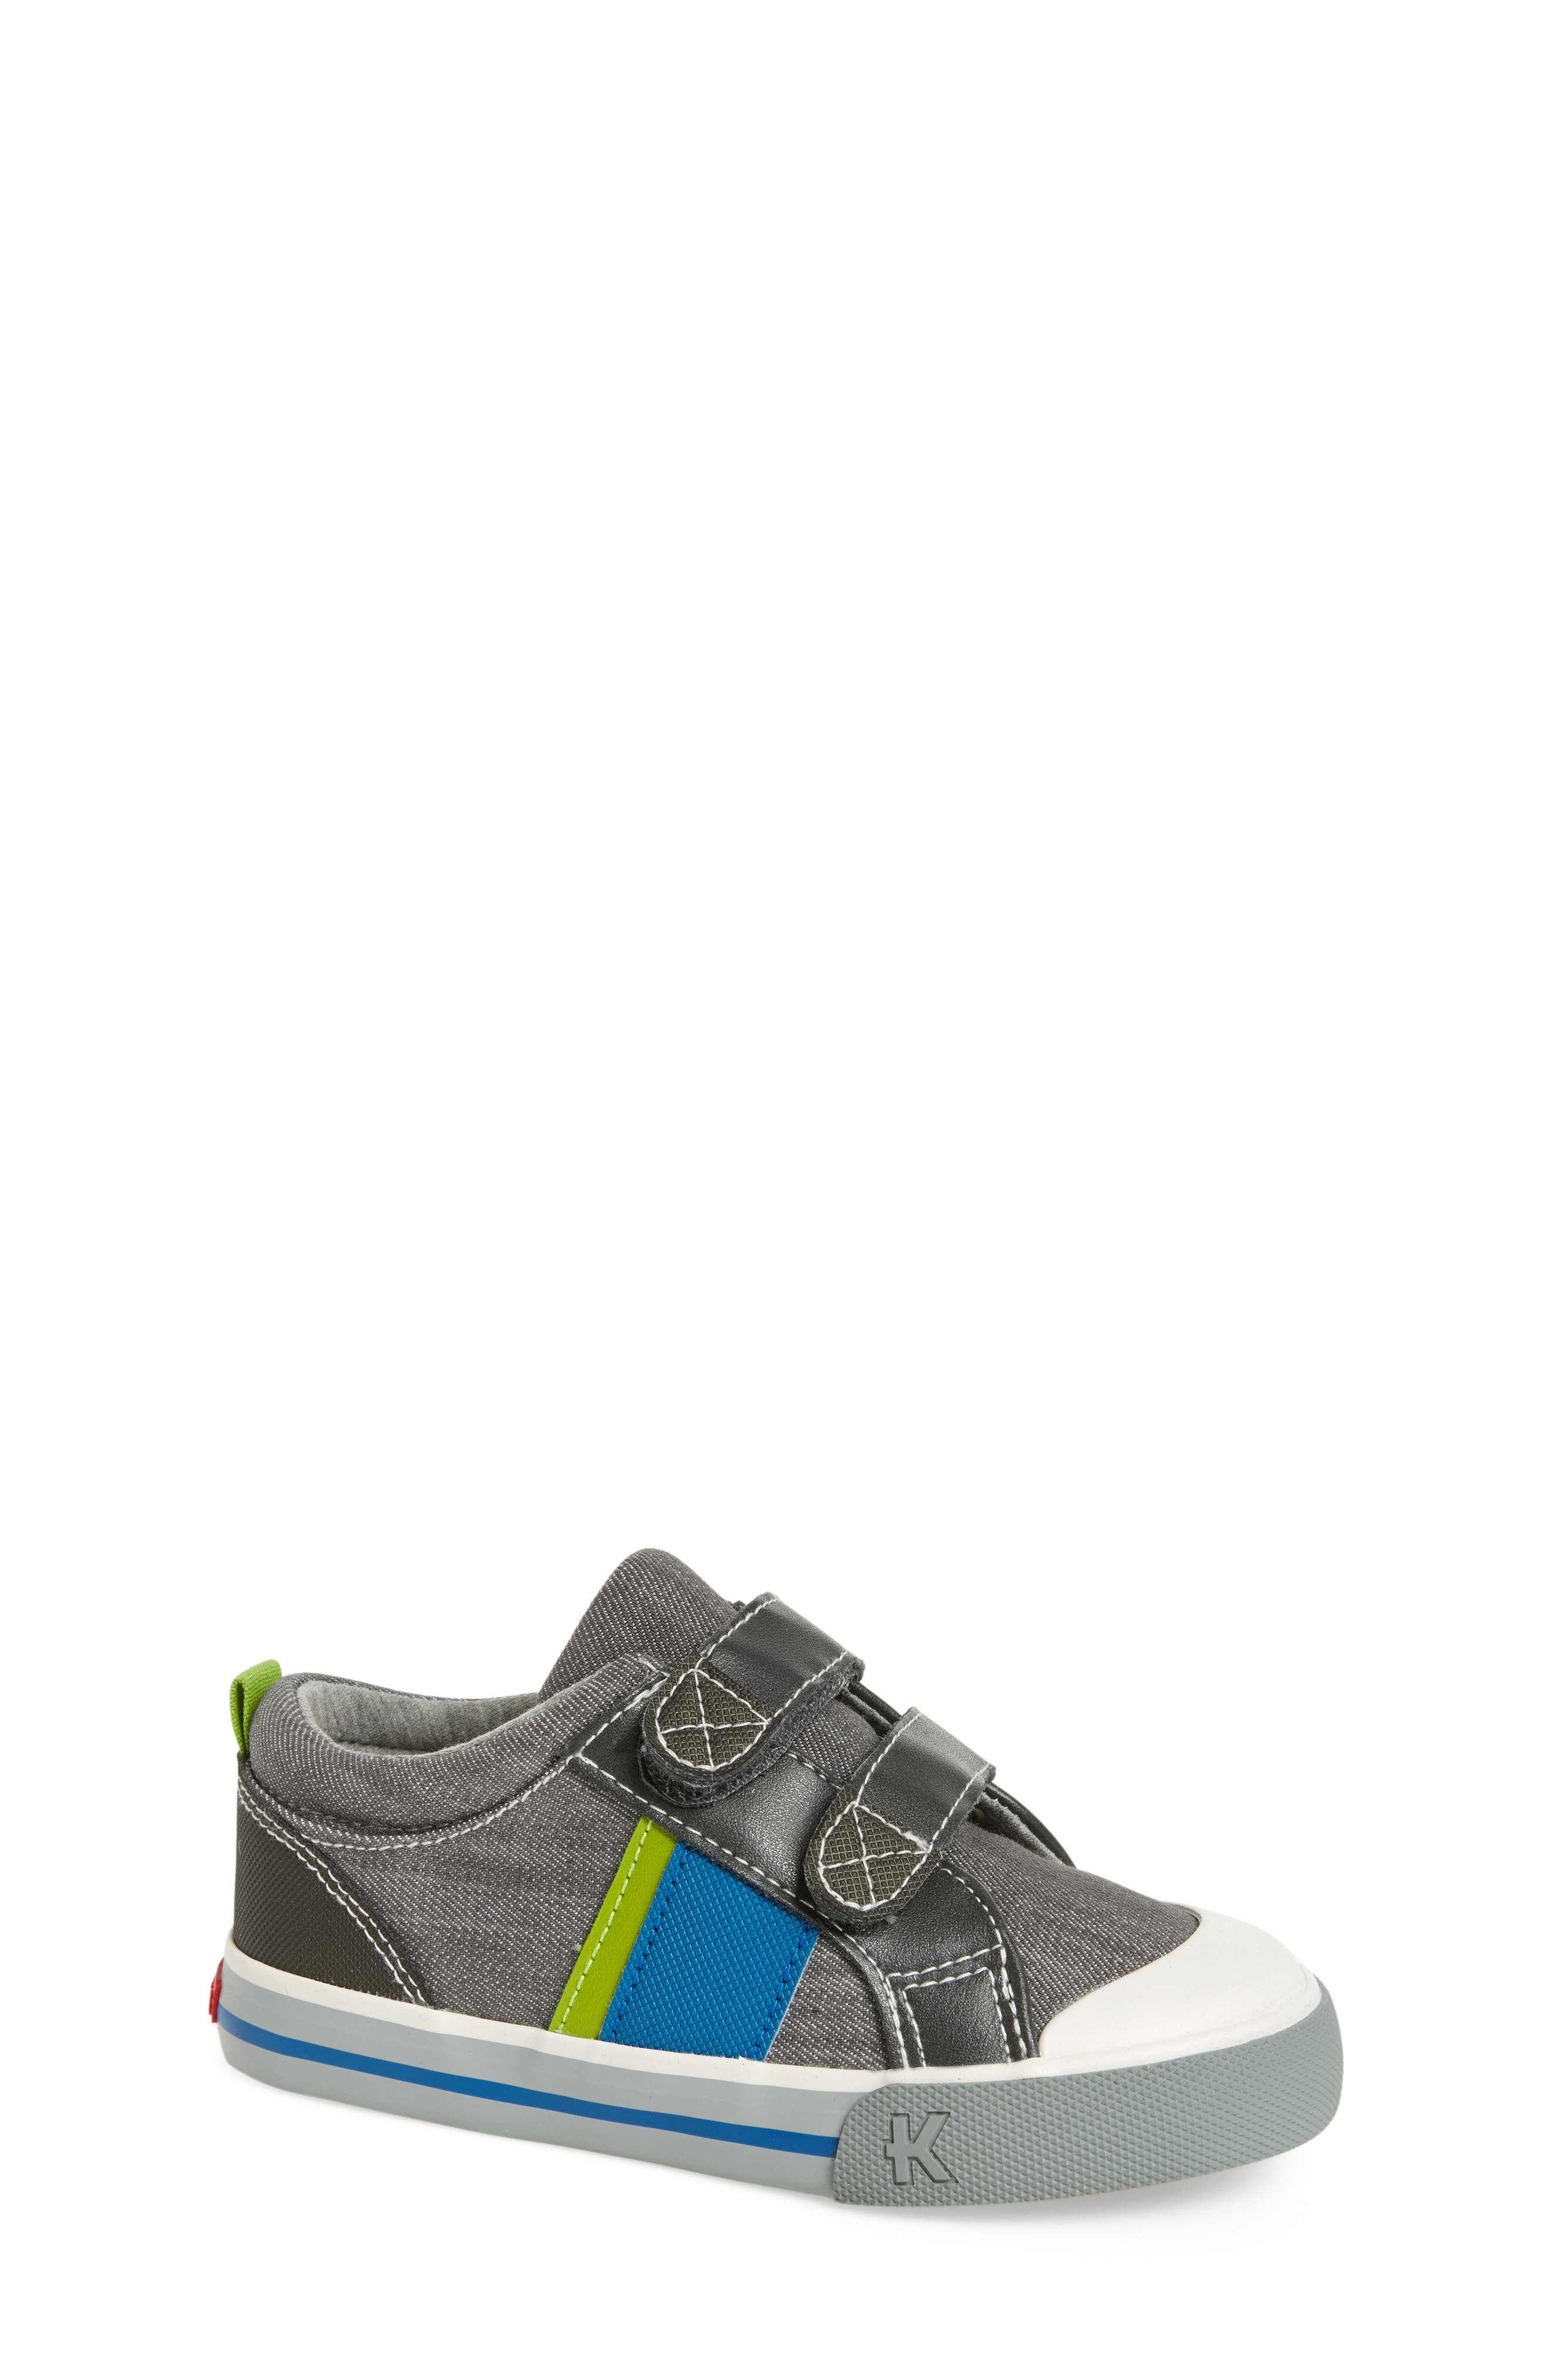 Russell Sneaker,                             Main thumbnail 1, color,                             020